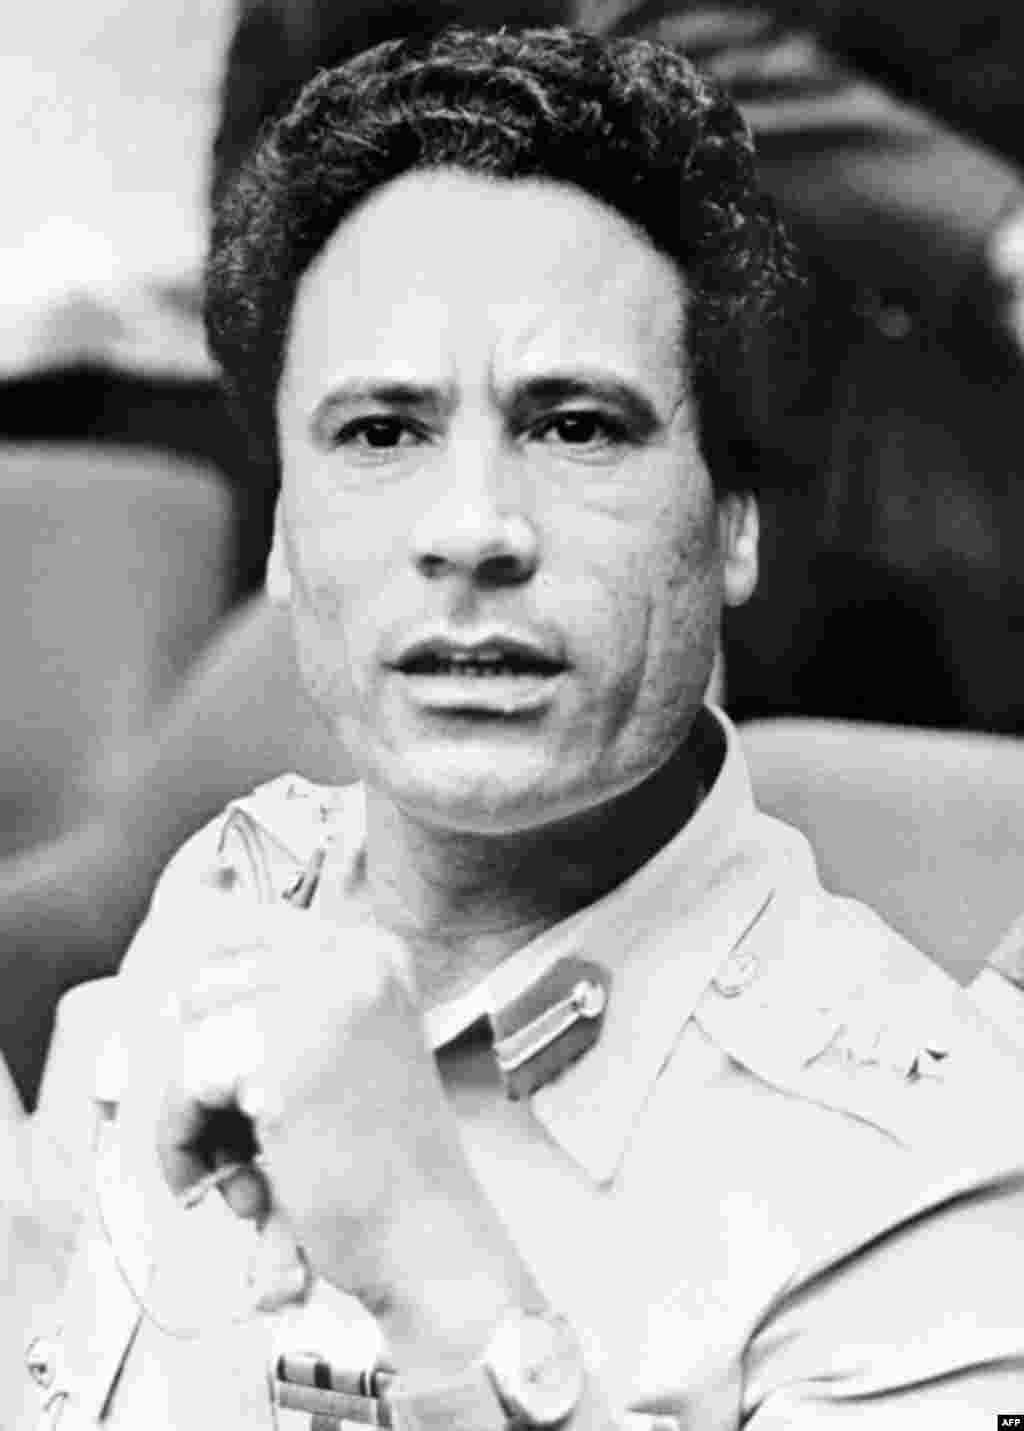 Picture taken 04 August 1975 in Kampala of Libyan Head of State Colonel Moammar Gadhafi during the summit of the Organization of African Unity (OAU), (AFP).